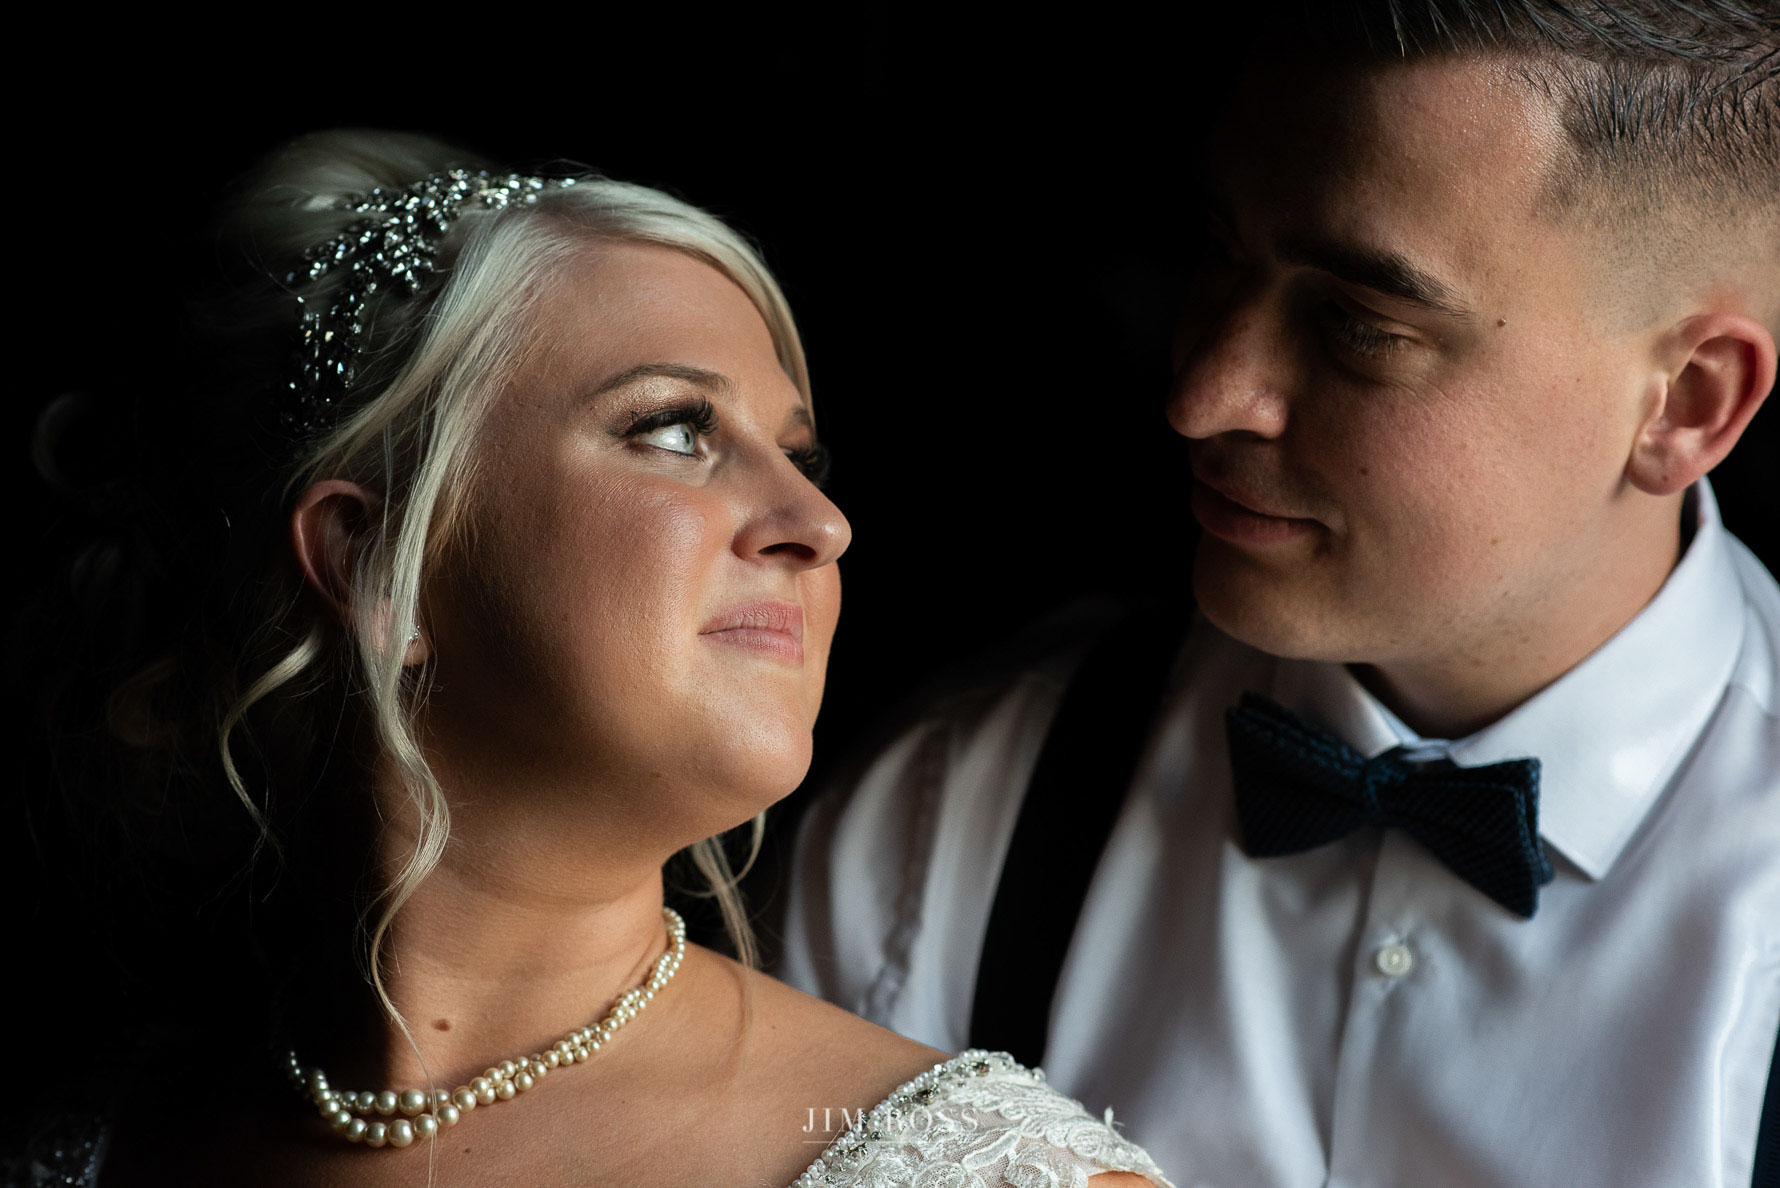 Newlywed portrait in window light